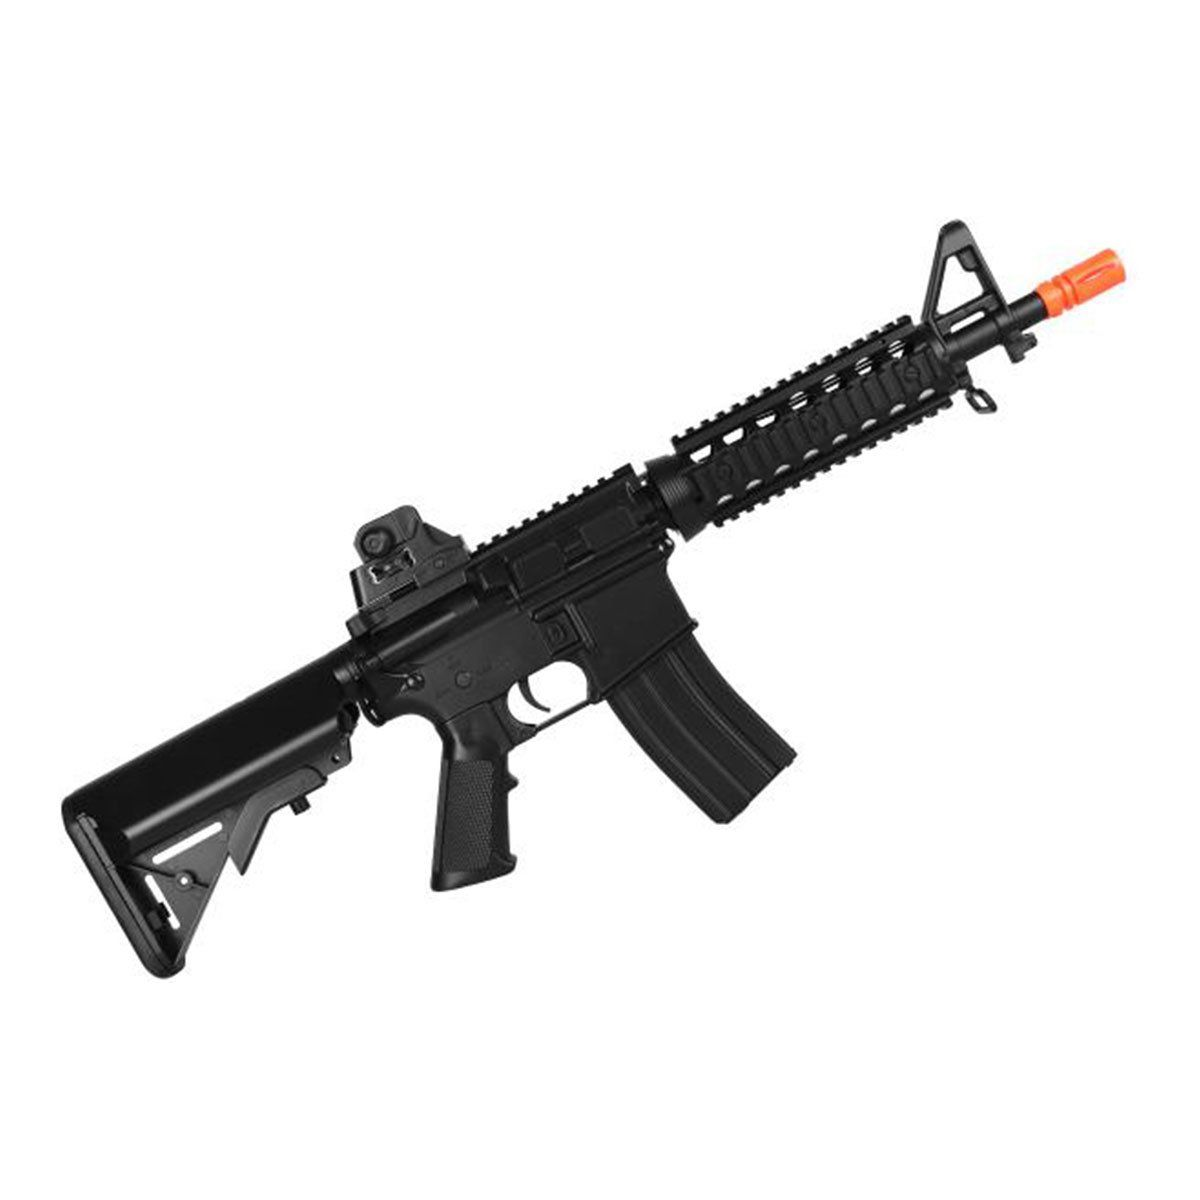 Rifle Airsoft M4A1 Ris Cyma CM506 Elétrico Calibre 6mm